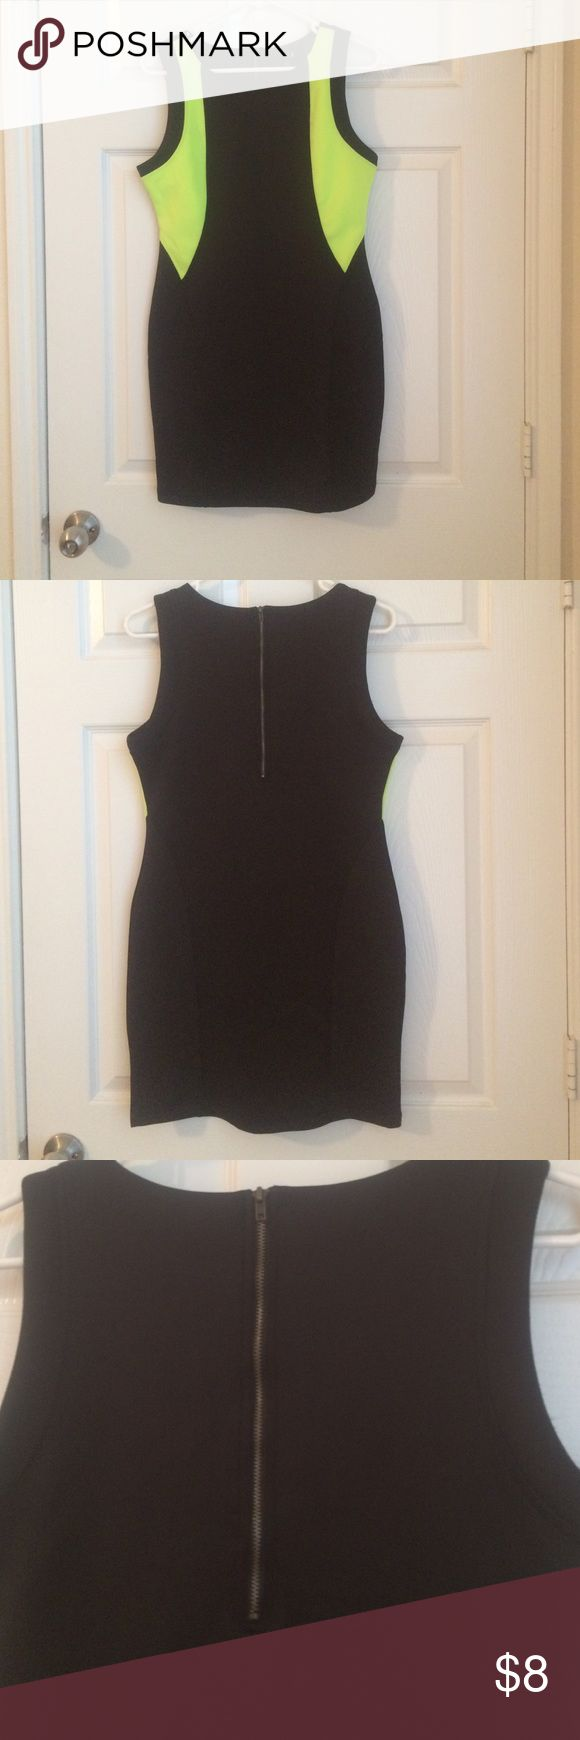 Scuba fabric fitted dress Dress is mini. Scuba like material. Had exposed zipper in back and stretches pretty well. Dress is black and neon yellow/green. Dress is new w/out tags Forever 21 Dresses Mini